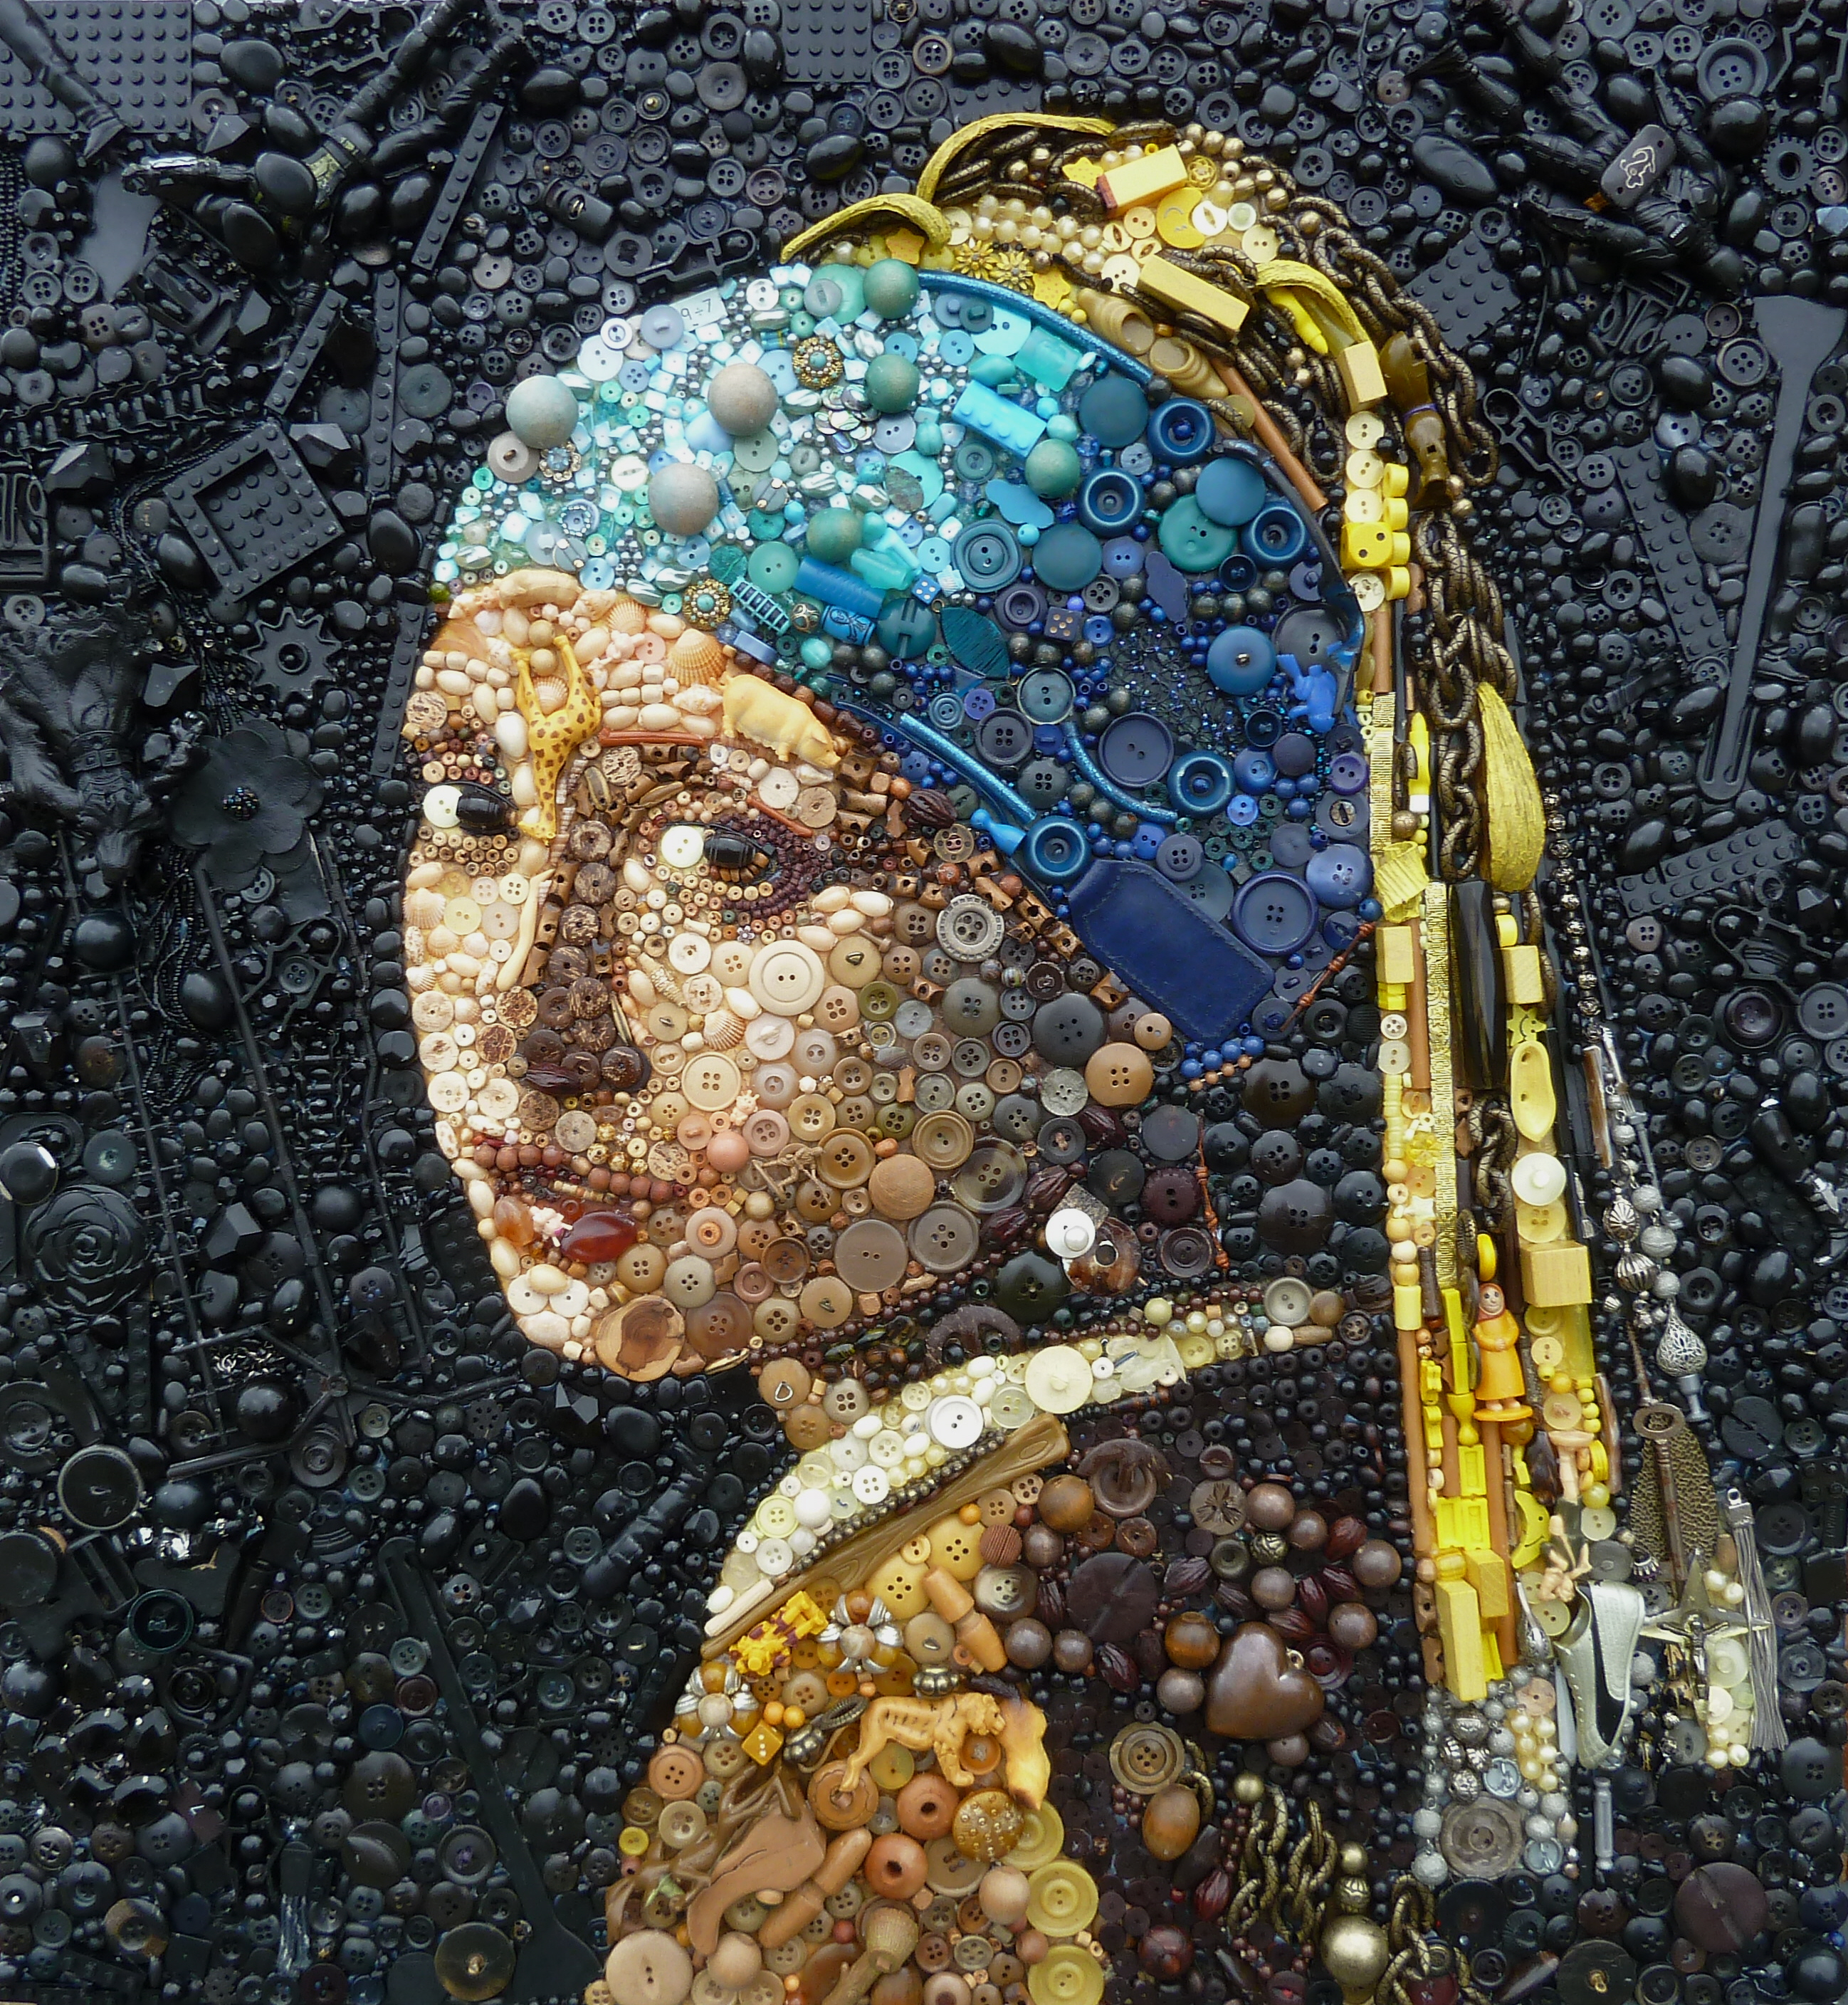 This Artists Recreates Great Works of Art Using Plastic Trinkets ...